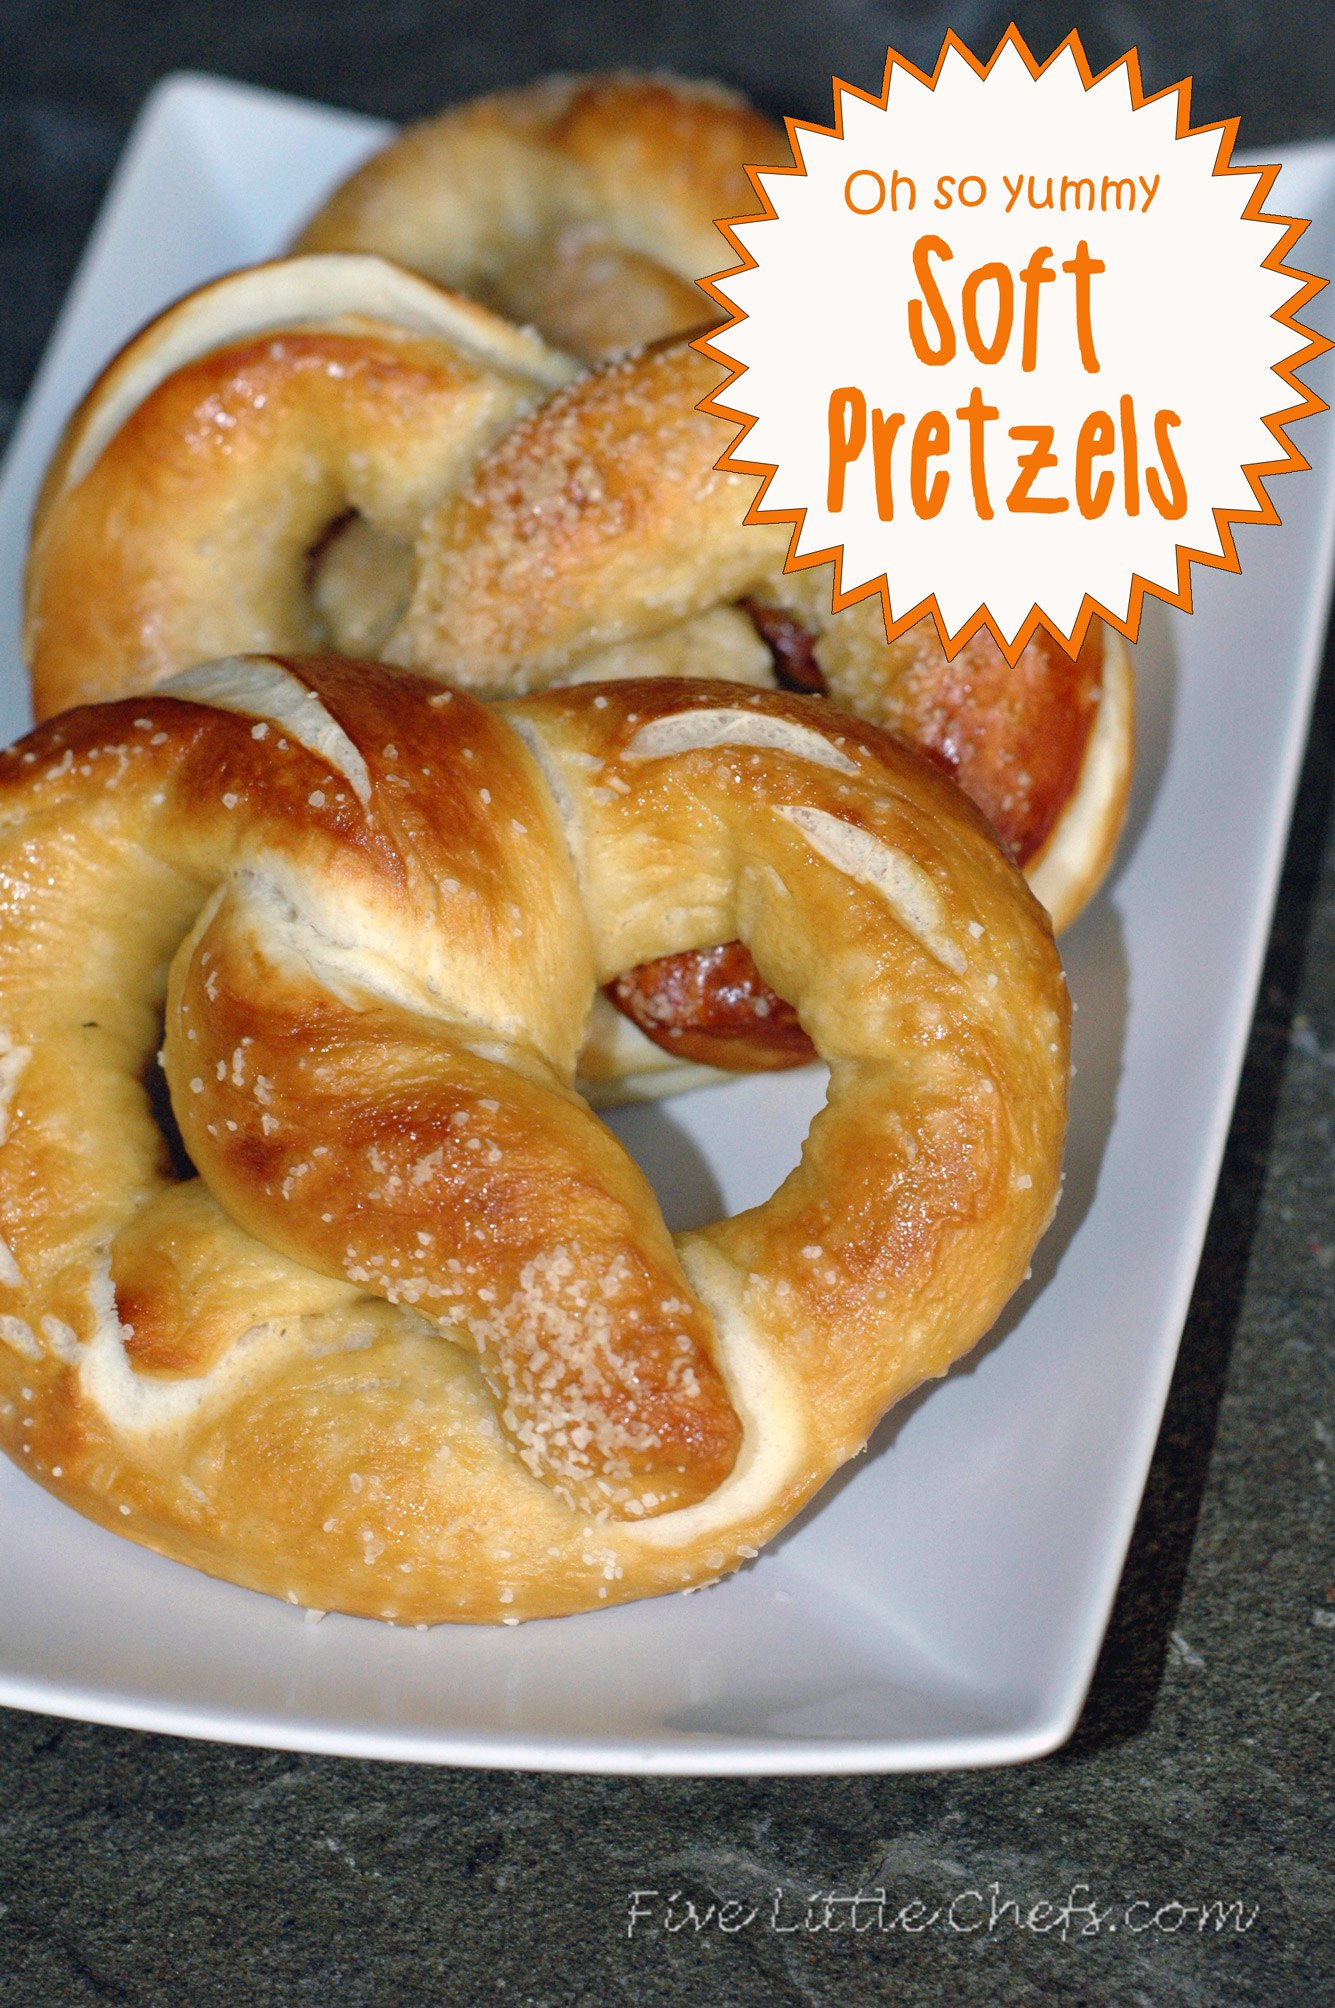 Soft Pretzels smell and taste just like the ones you find at the mall.